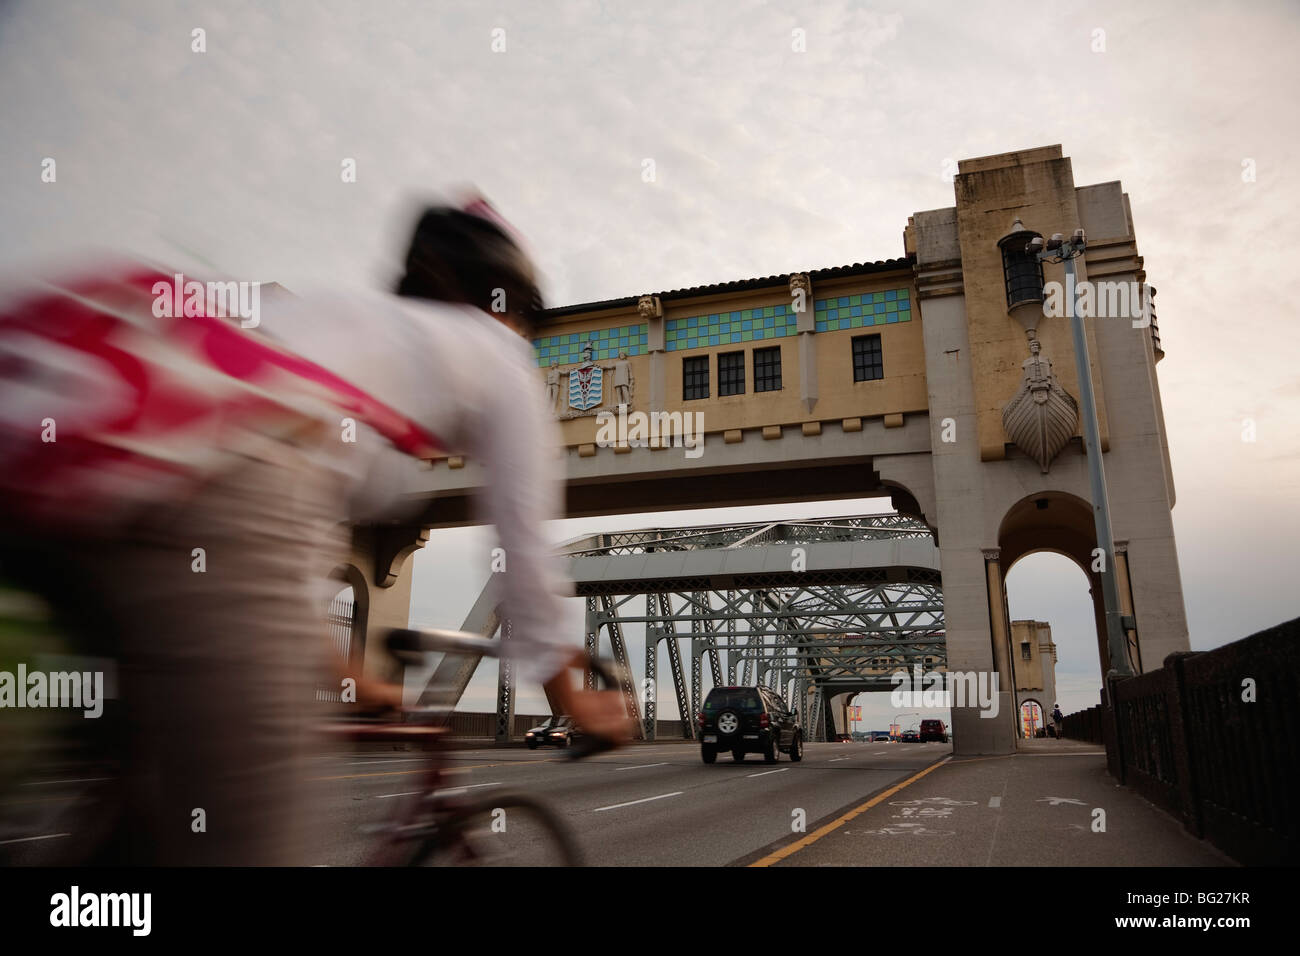 Bicyclist speeds by on the bike lane on Burrard Street Bridge, Vancouver, BC, Canada - Stock Image